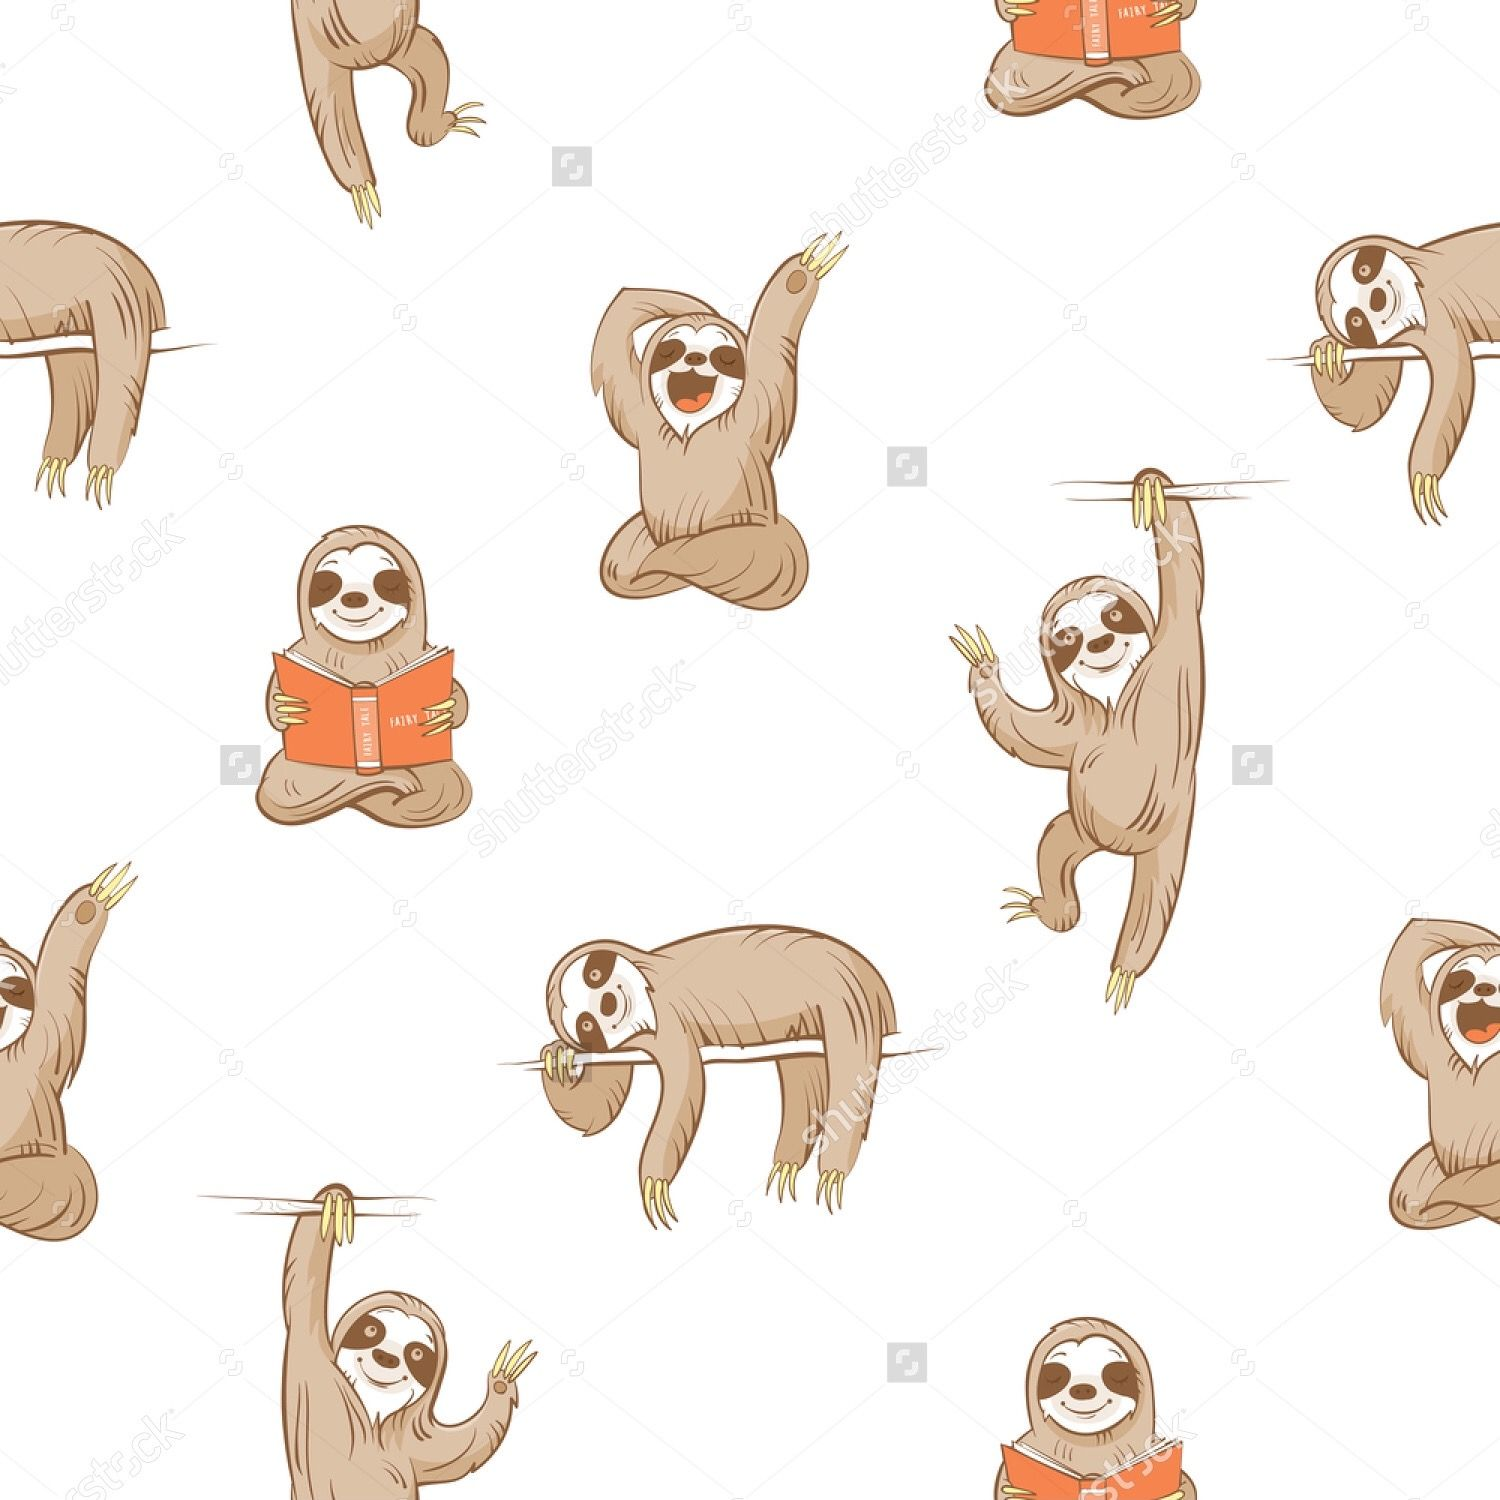 Sloth Pattern shutterstock Sloth, Cute sloth, Sloth art